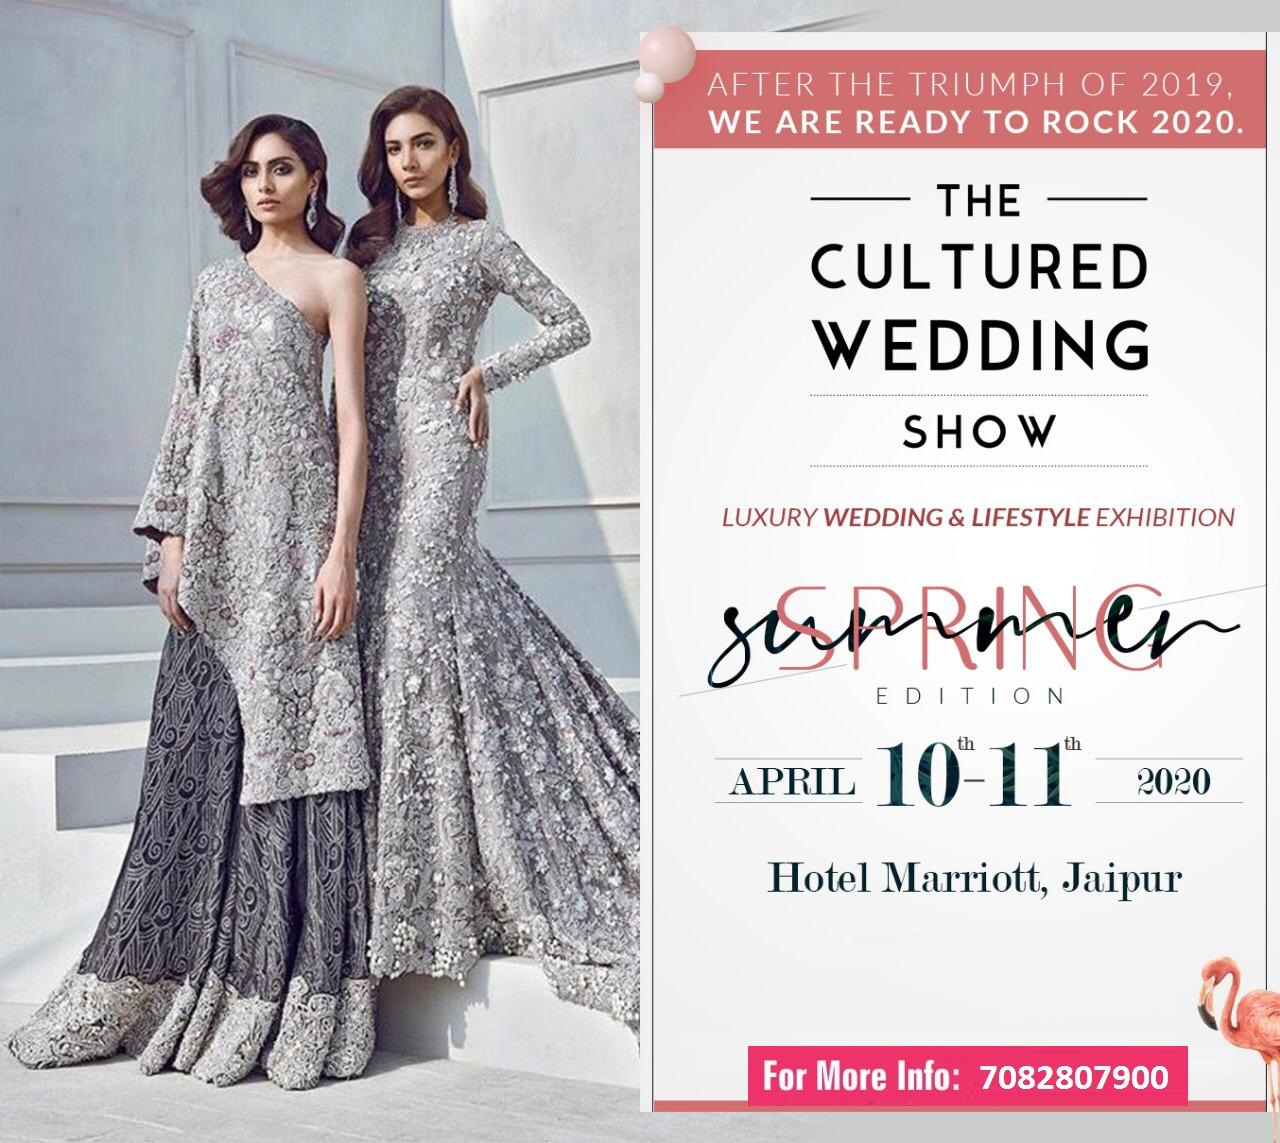 The Cultured Wedding Show